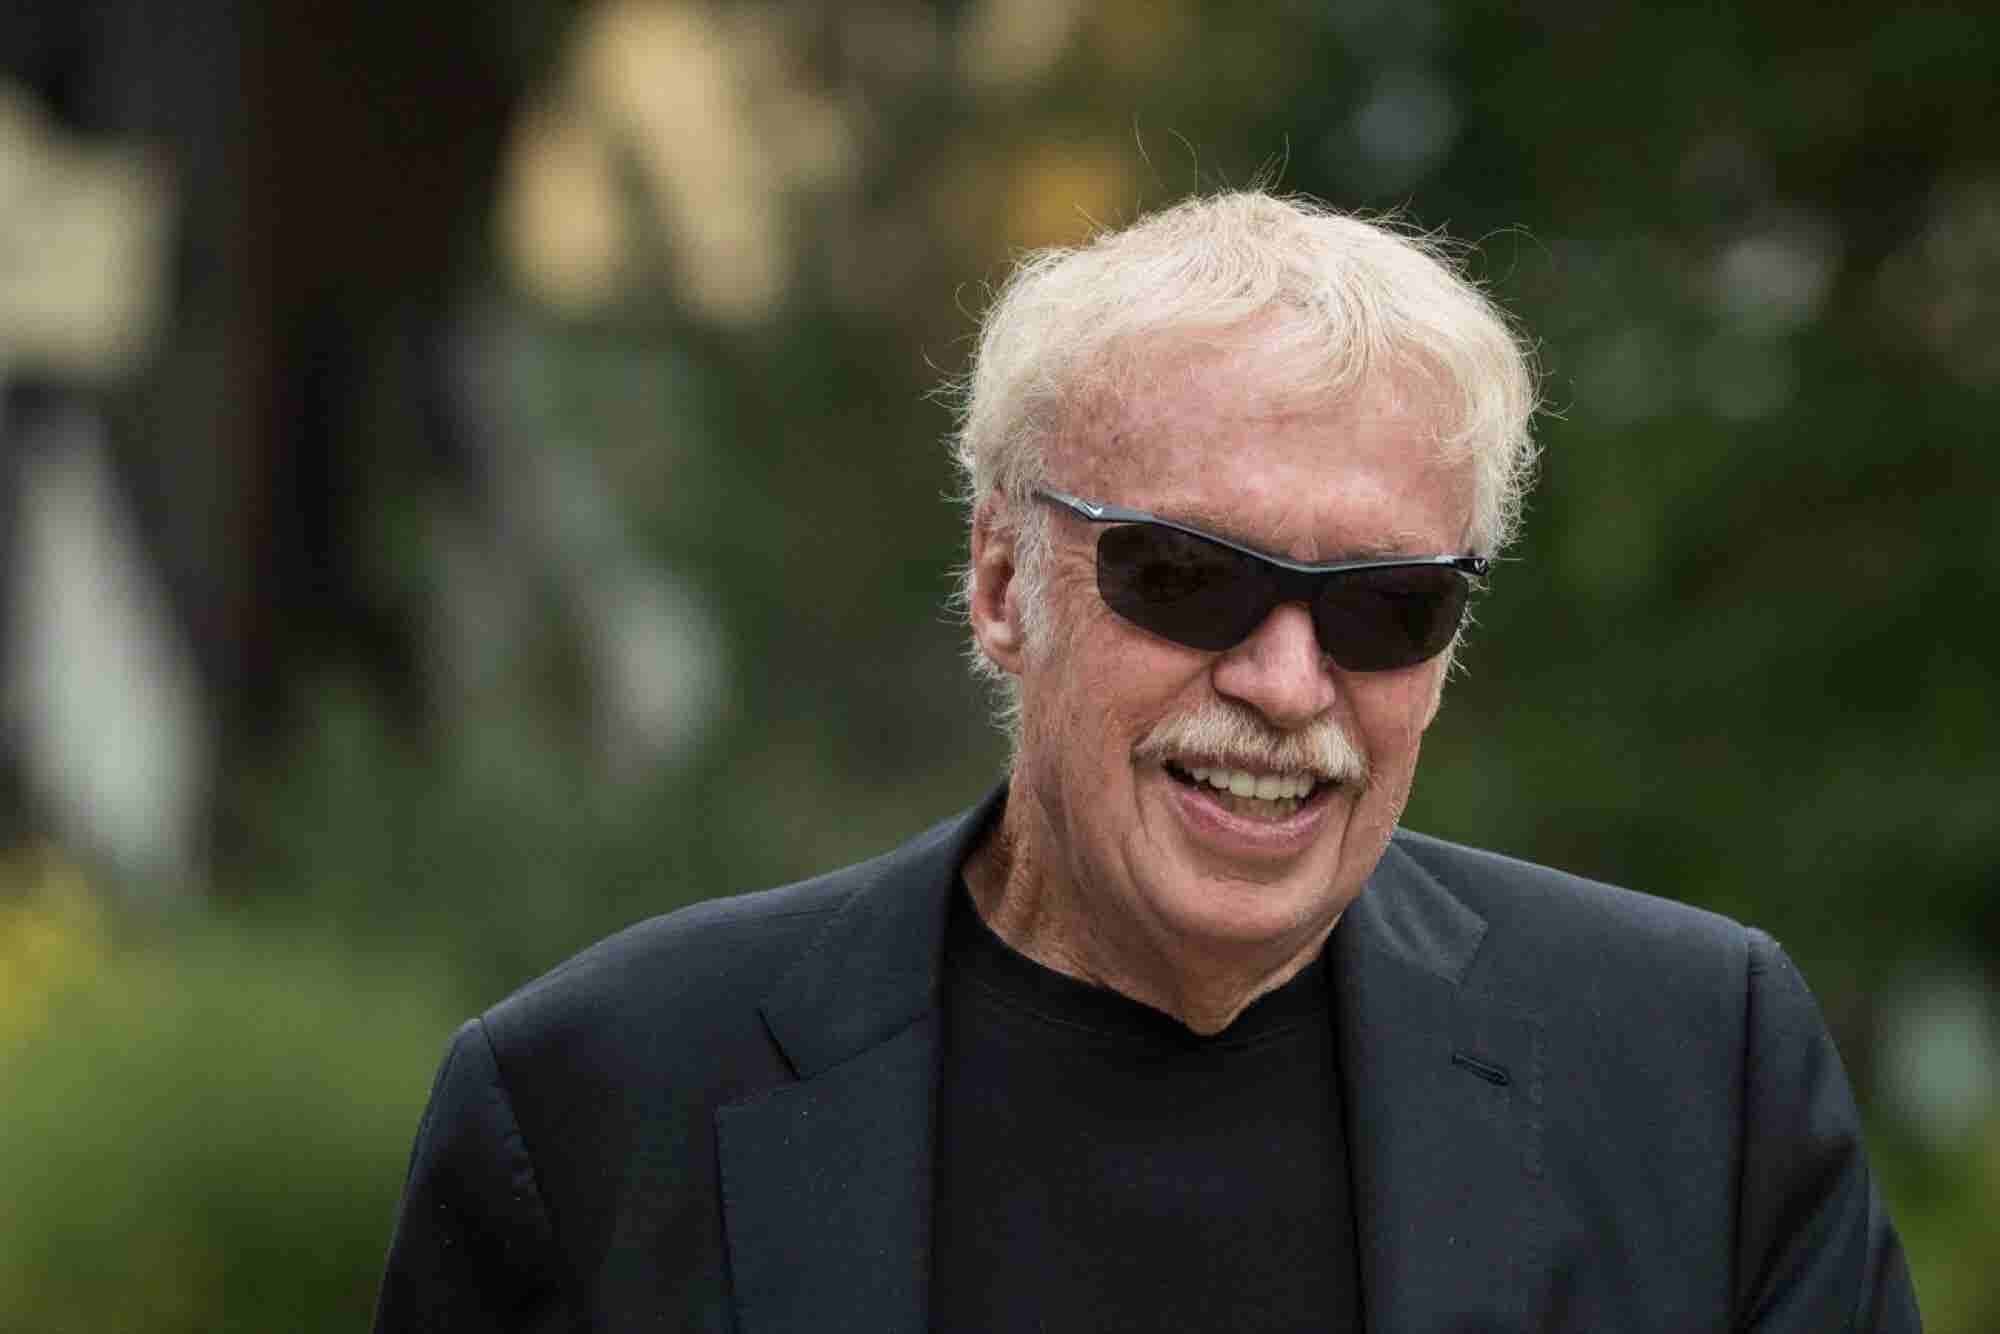 12 Quotes on Leadership, Passion, Hard Work and More from the Entrepreneur Behind Nike Phil Knight